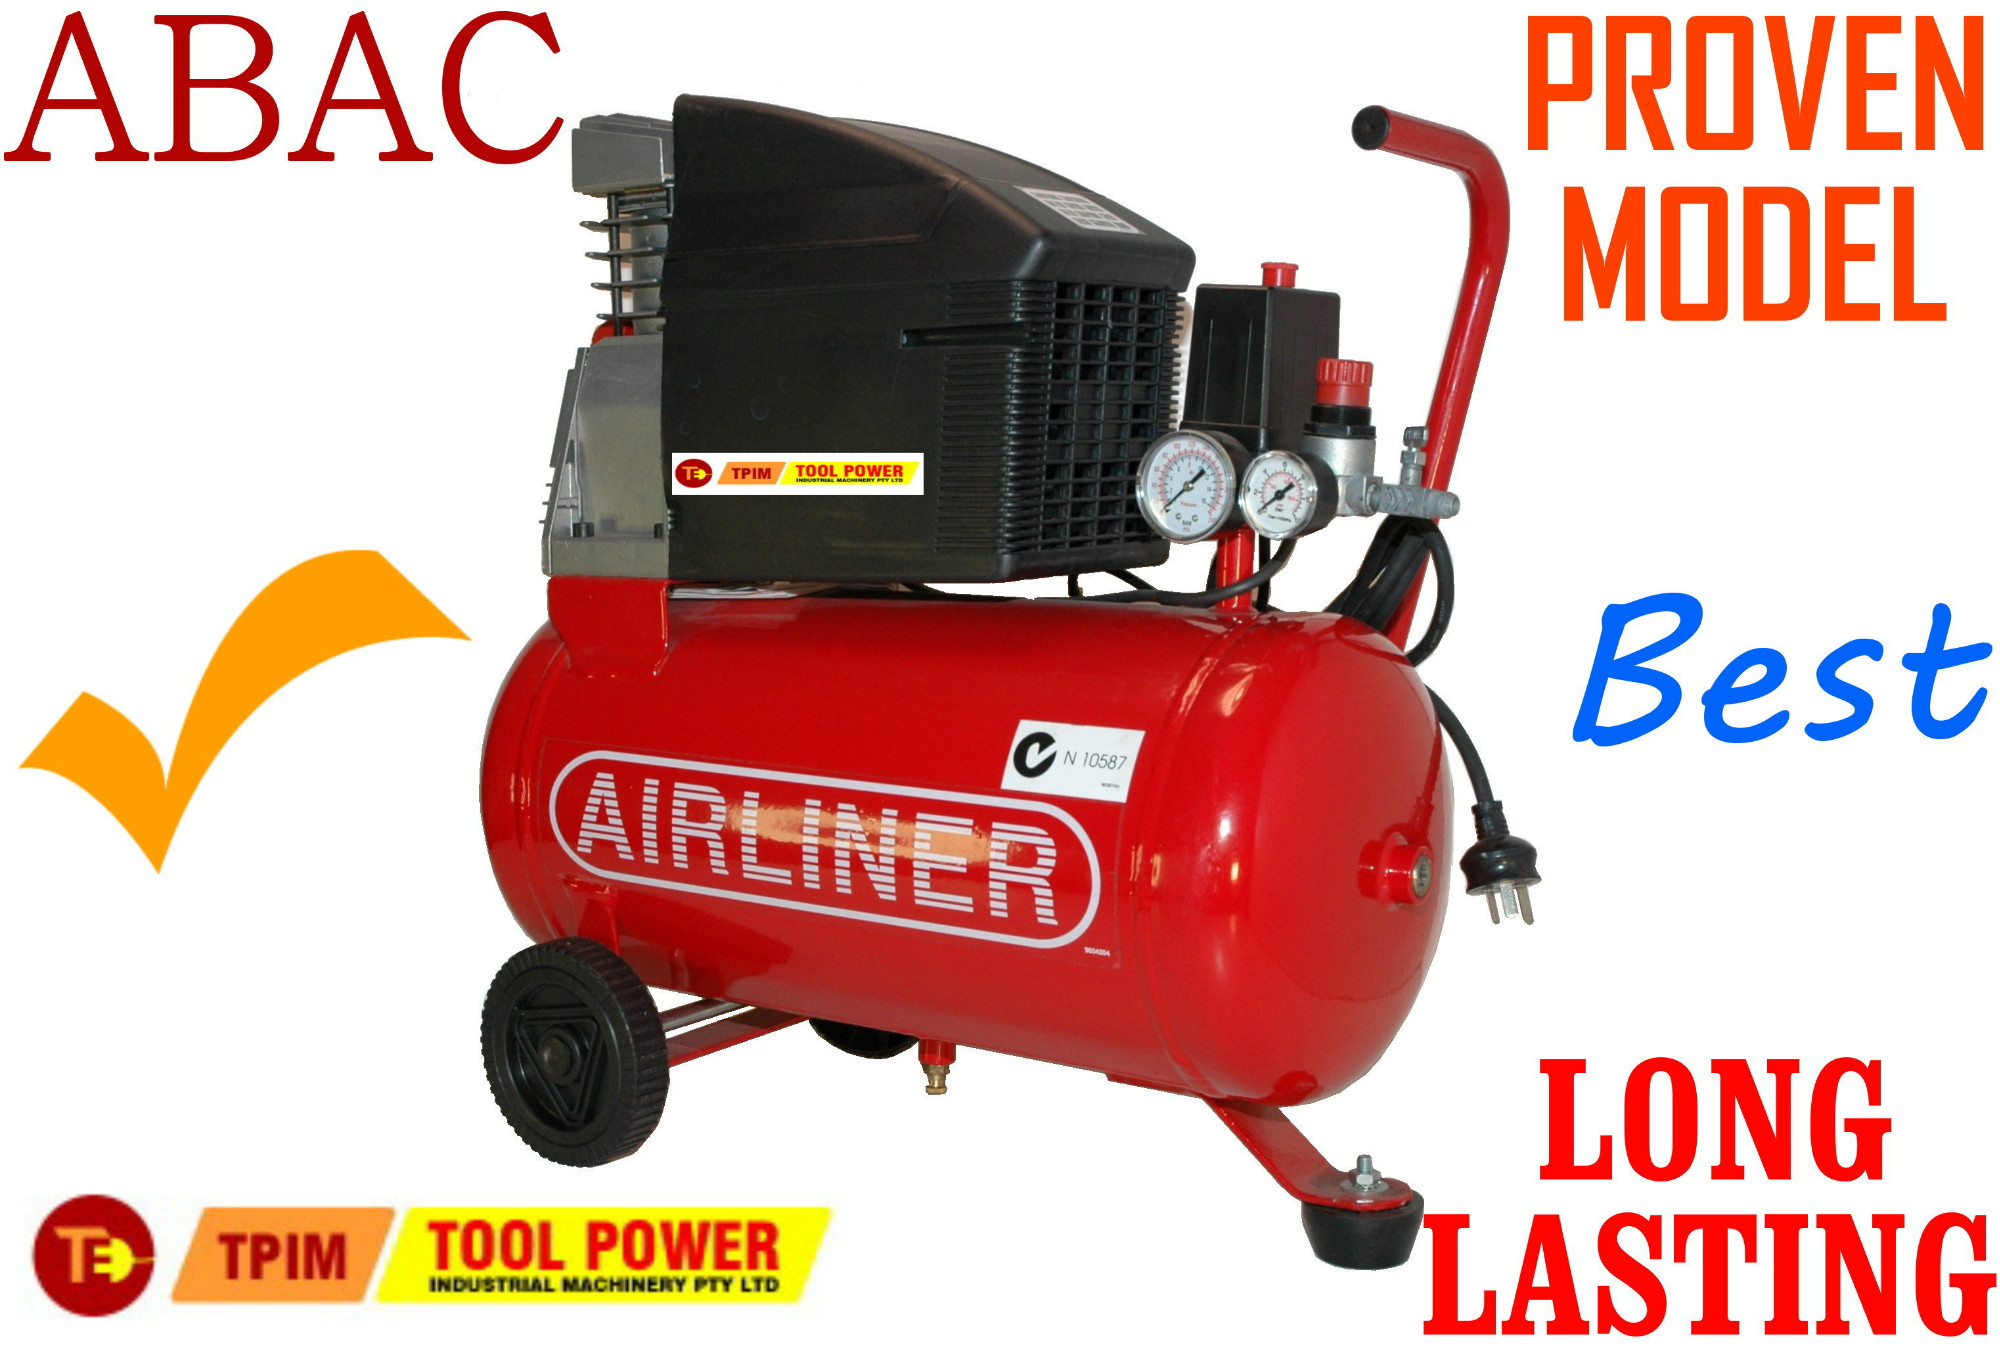 Air Compressor ABAC 2-hp x 24L PUMP & MOTOR